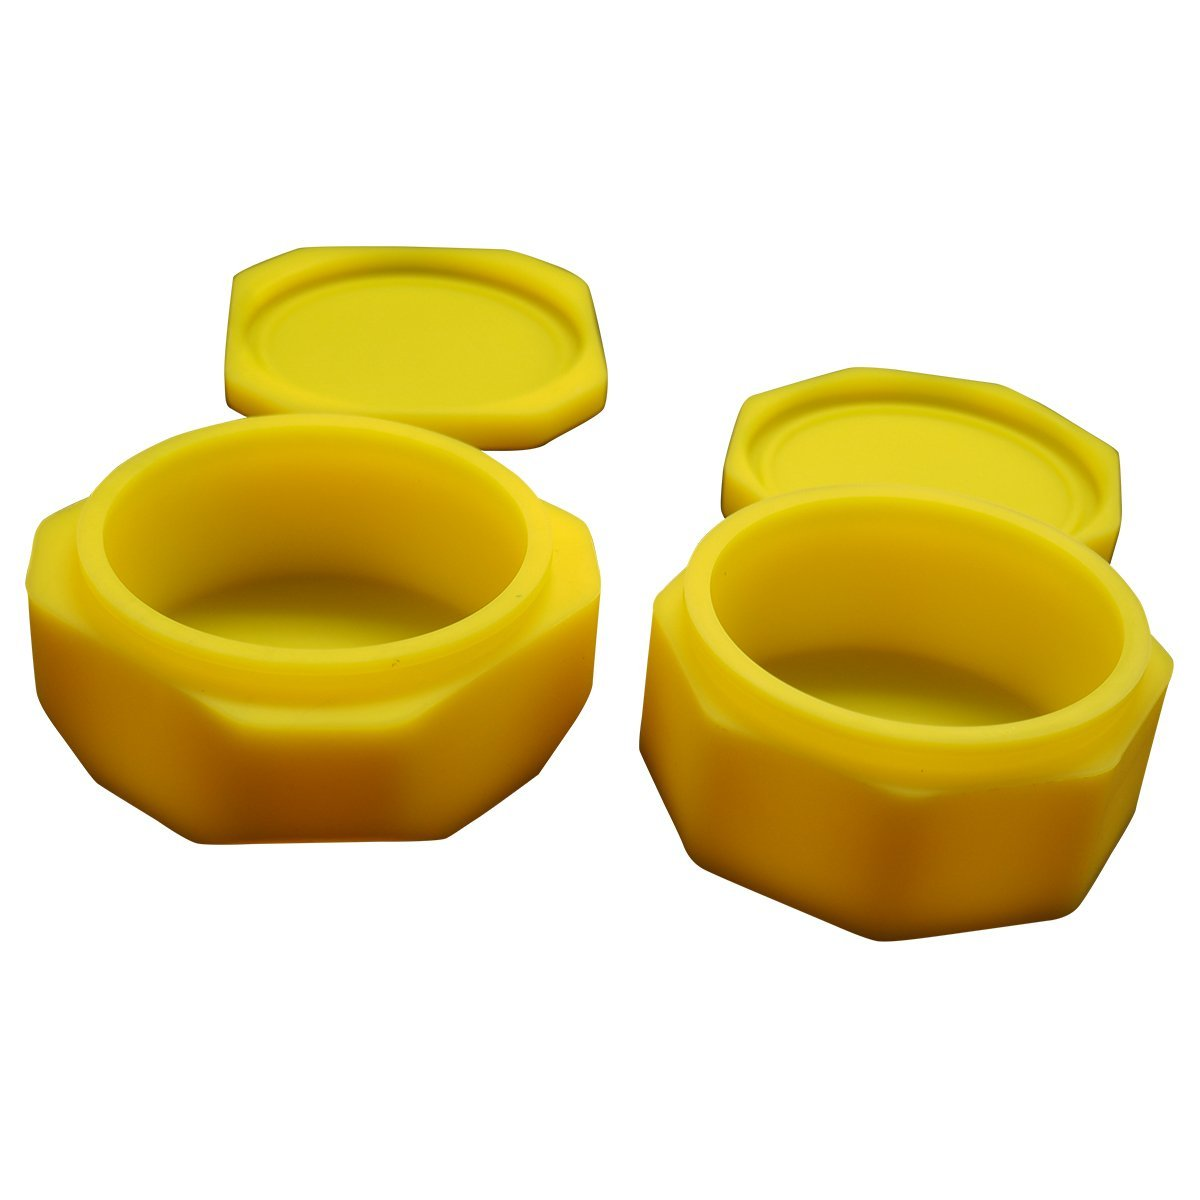 Gentcy Large 223ml Silicone Container Jars Wax Storage Oil Concentrate Box Yellow 2PCS AX-AY-ABHI-112507